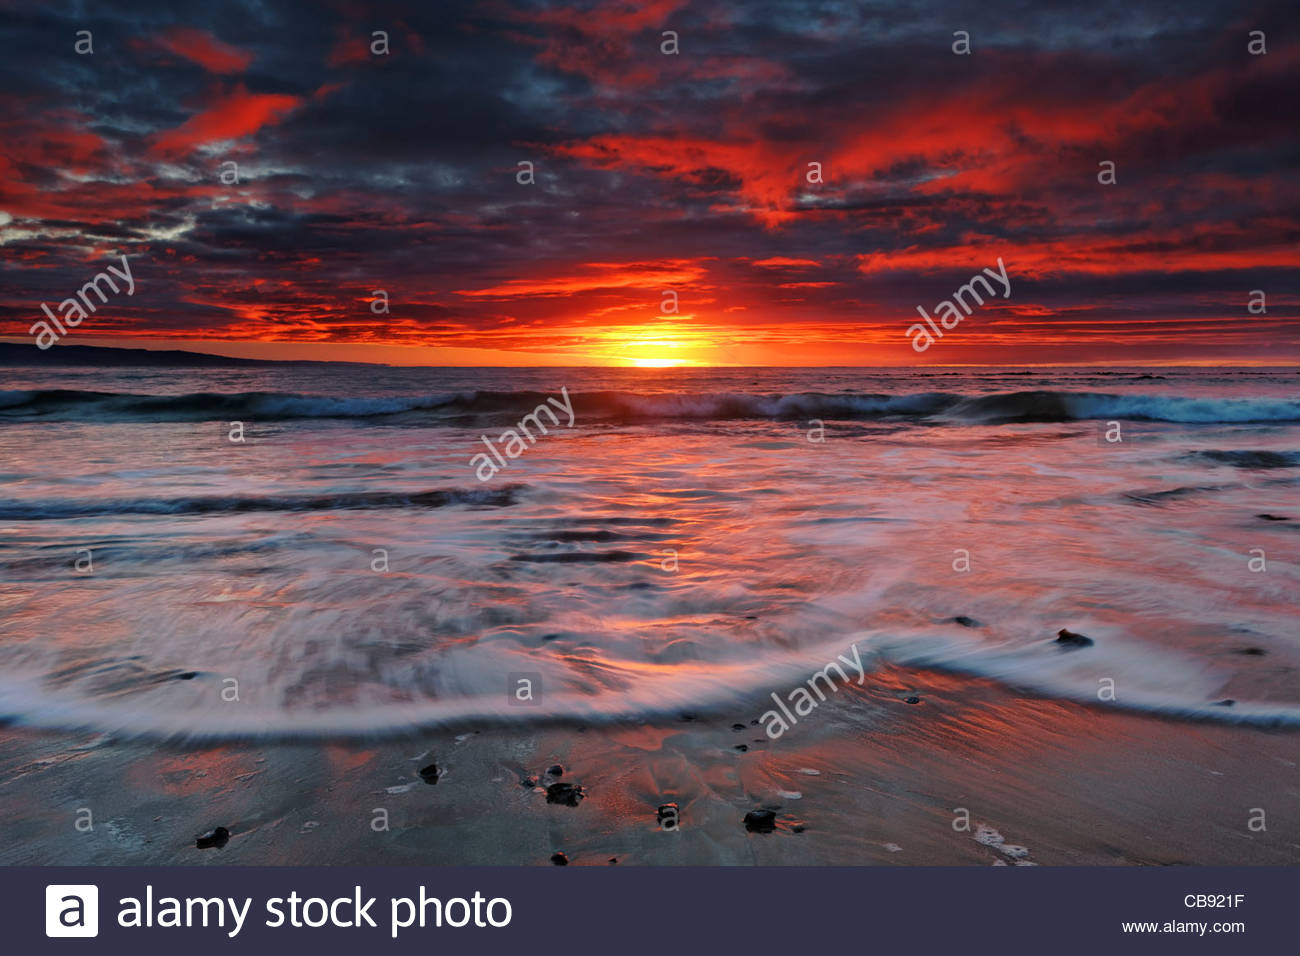 Water racing over ripples on the beach at New Zealand's Molyneux Bay catch some of the fiery color of the sunrise. - Stock Image